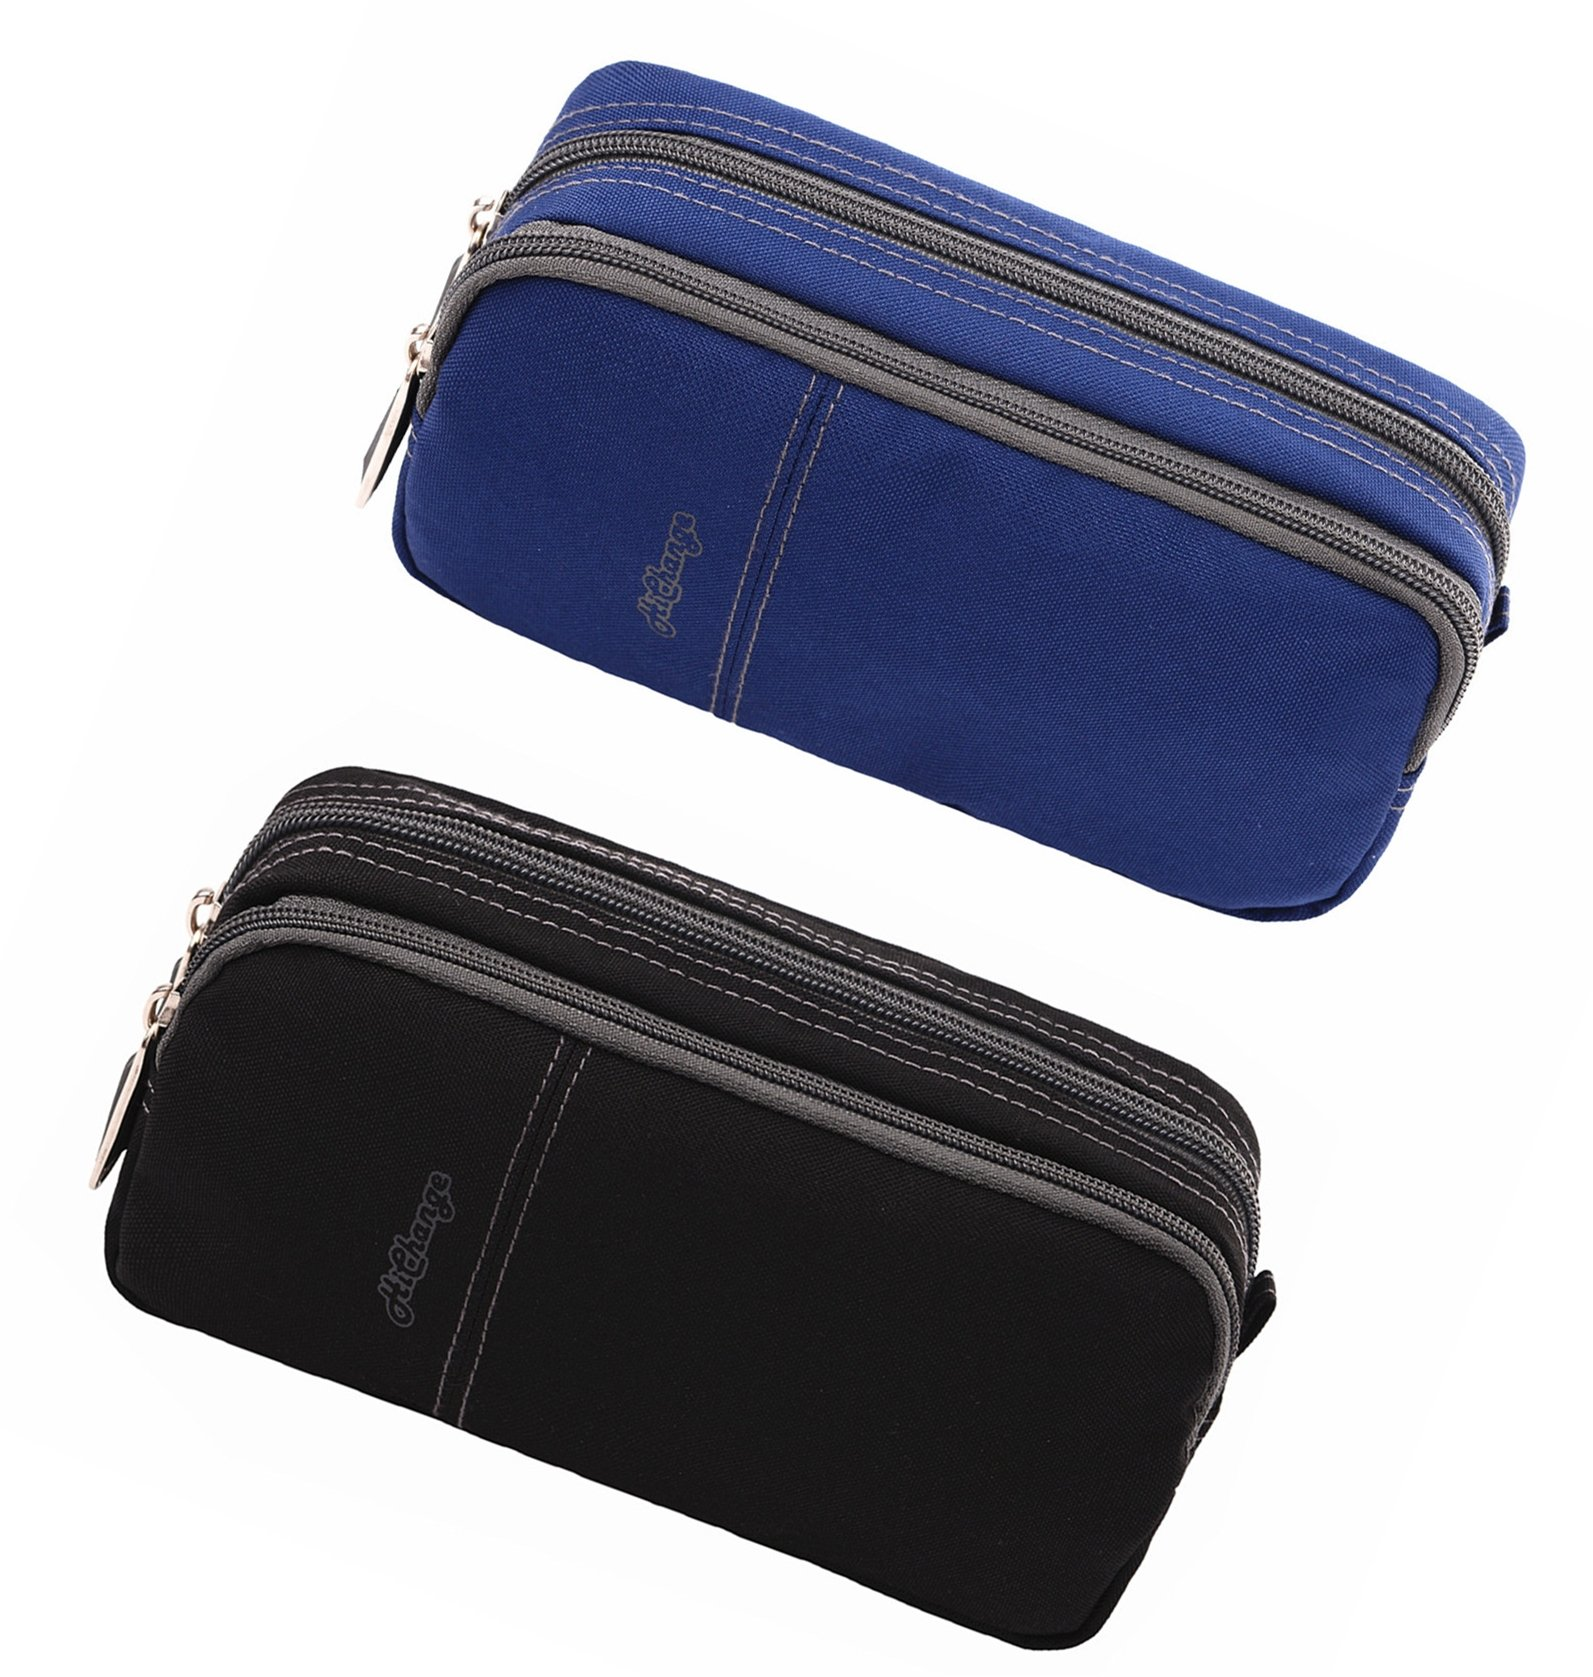 Pencil Case Large Pencil Pouch Pencil Bag with Double Compartments for Girls Boys Adults  (2Pack Black+Navy) by HiChange